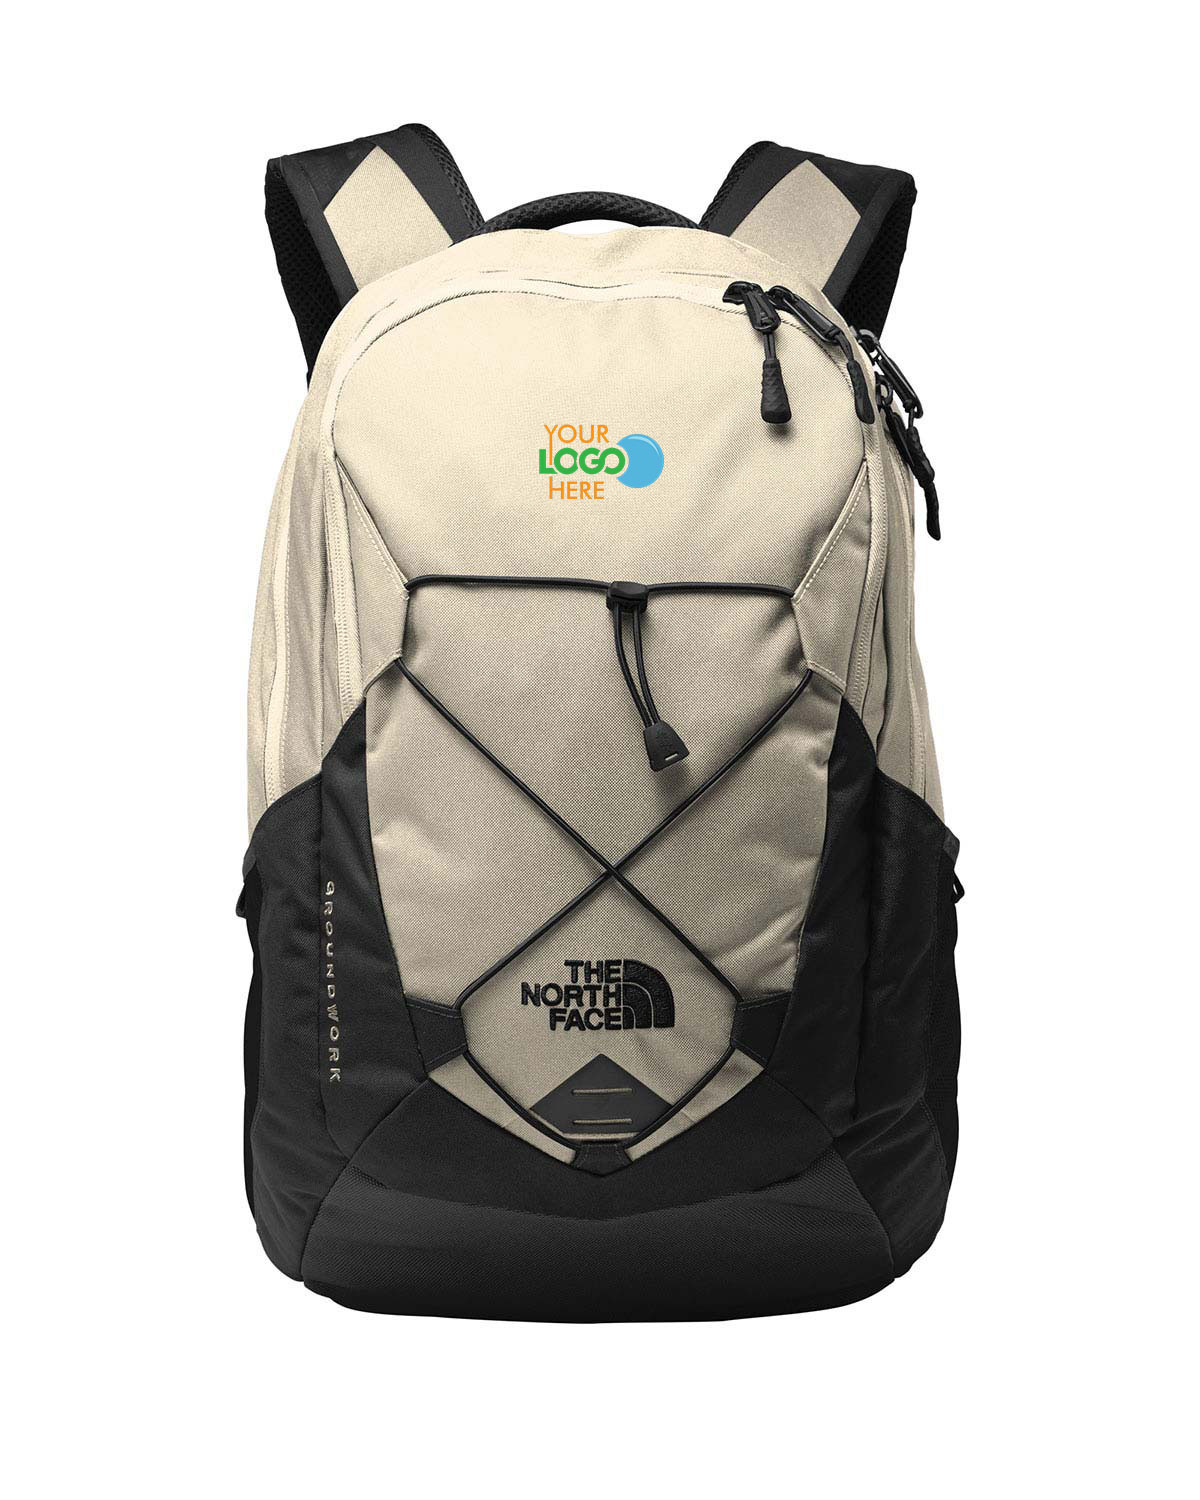 The North Face NF0A3KX6 Groundwork Backpack